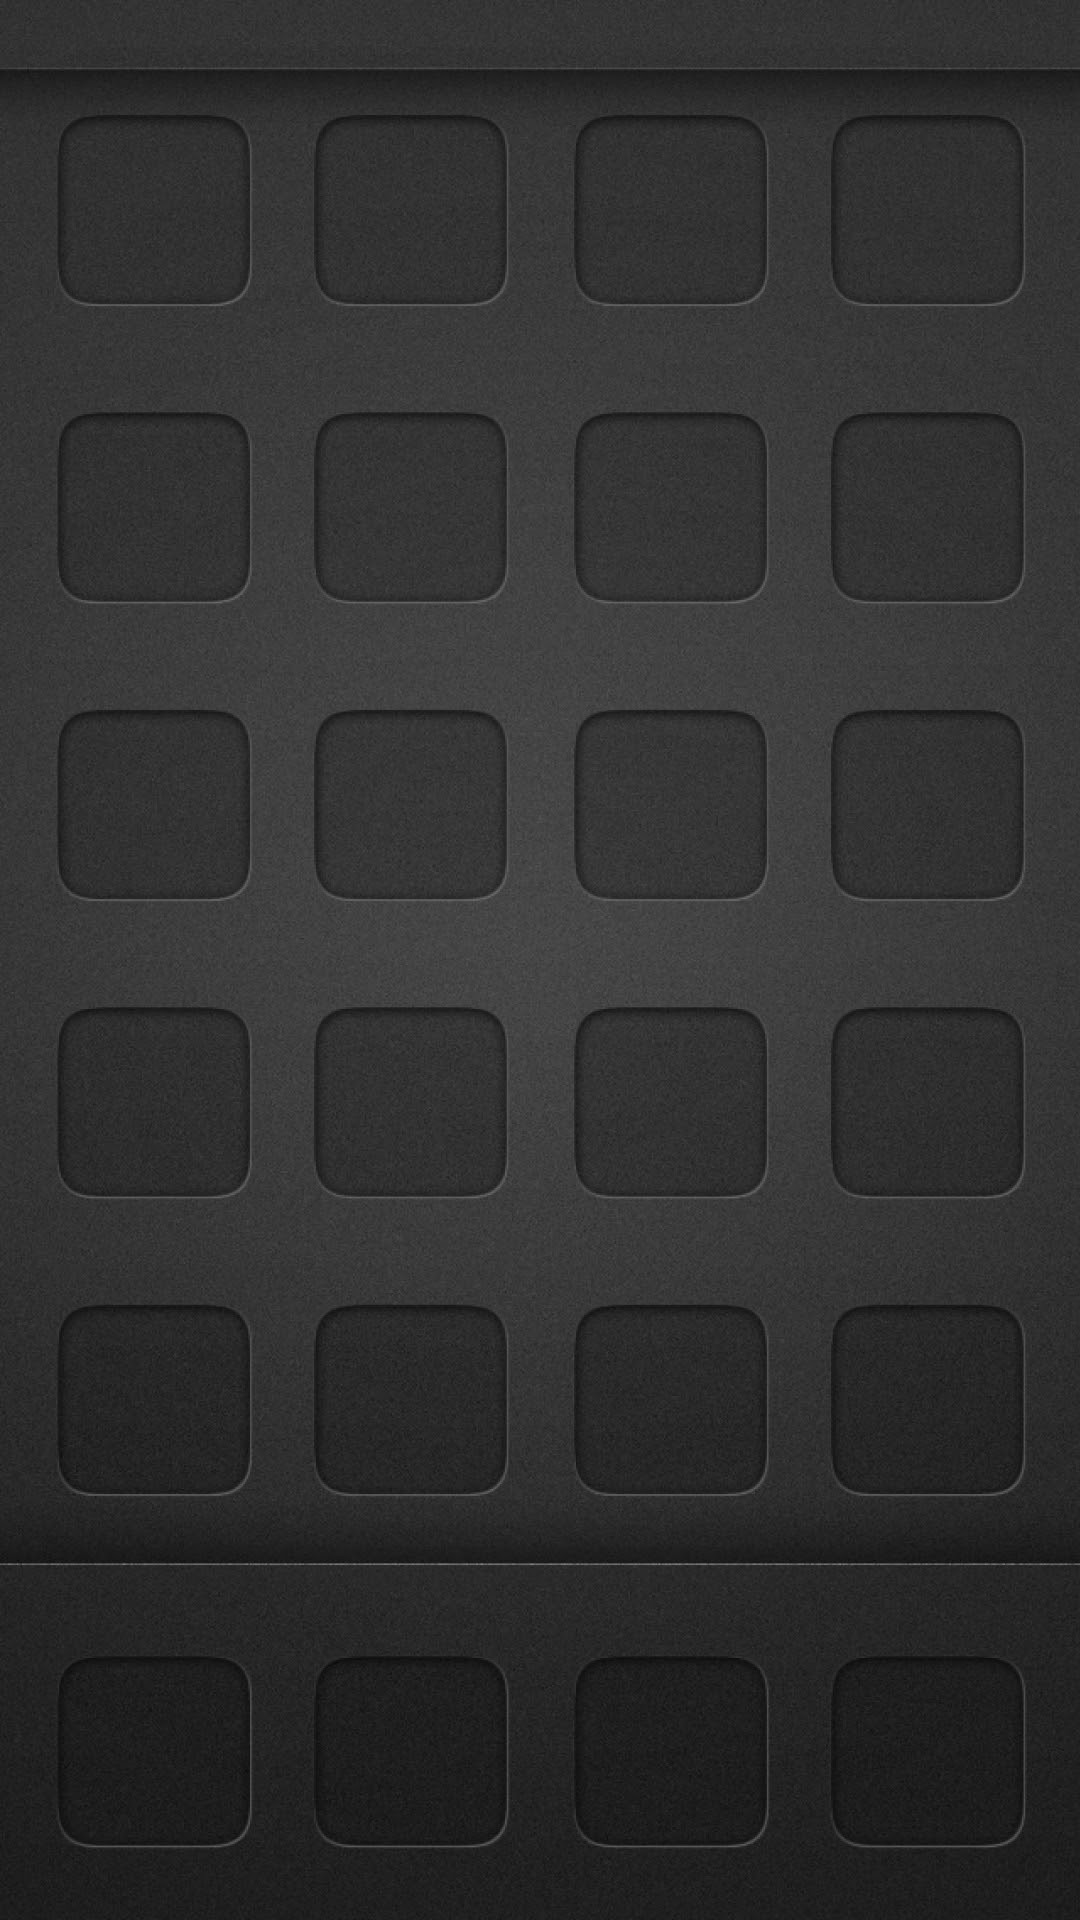 Home Screen wallpaper for android